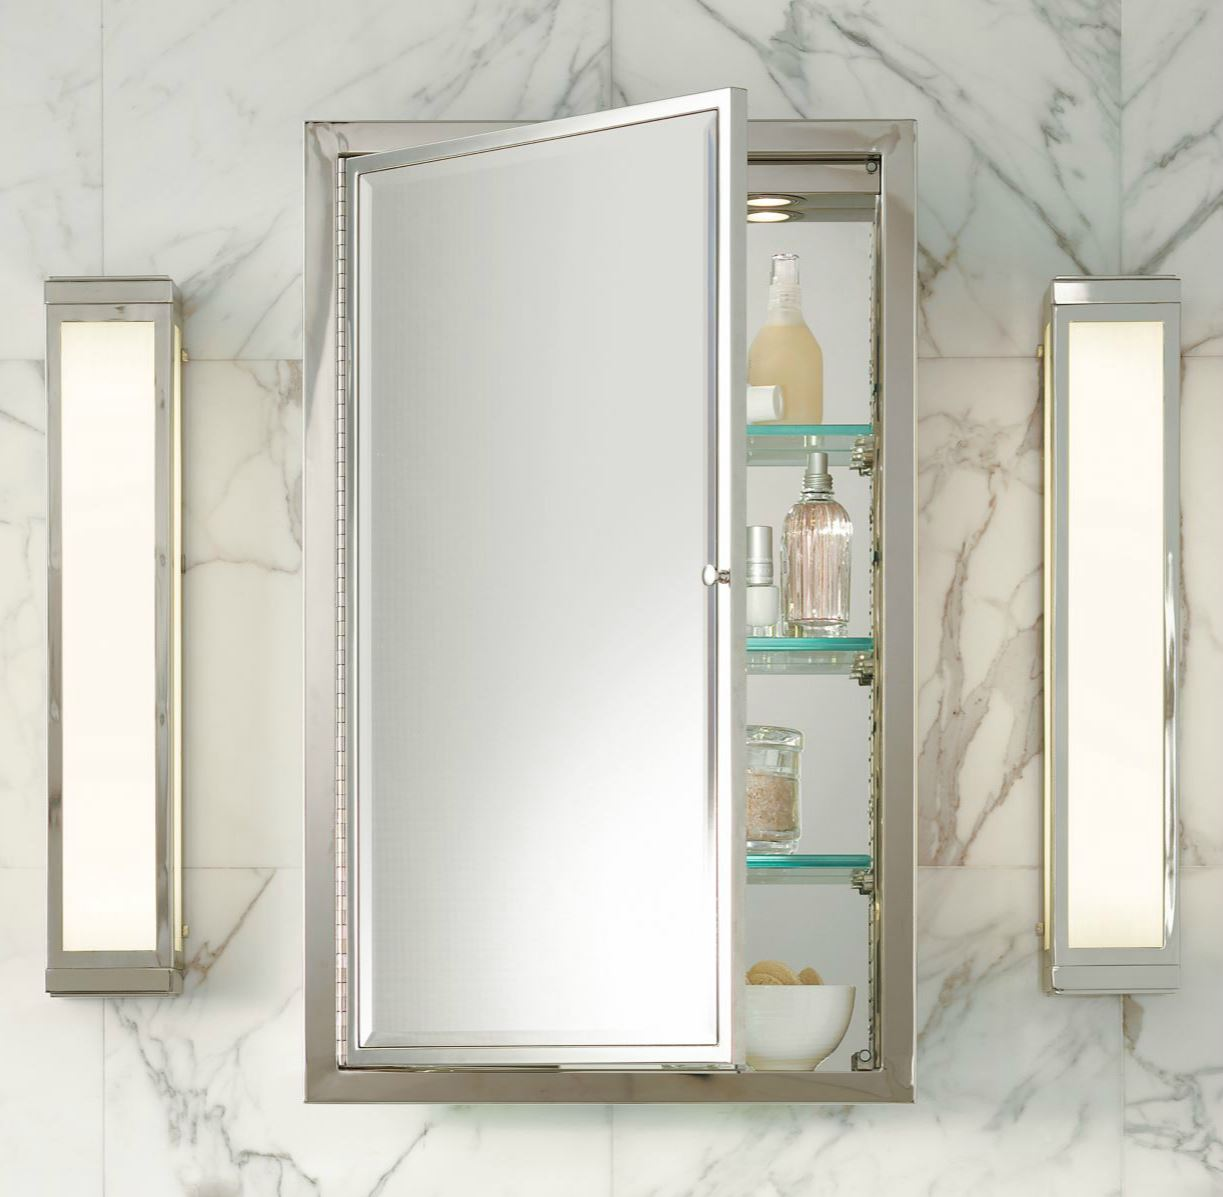 20 tips for an organized bathroom - Bathroom mirrors and medicine cabinets ...